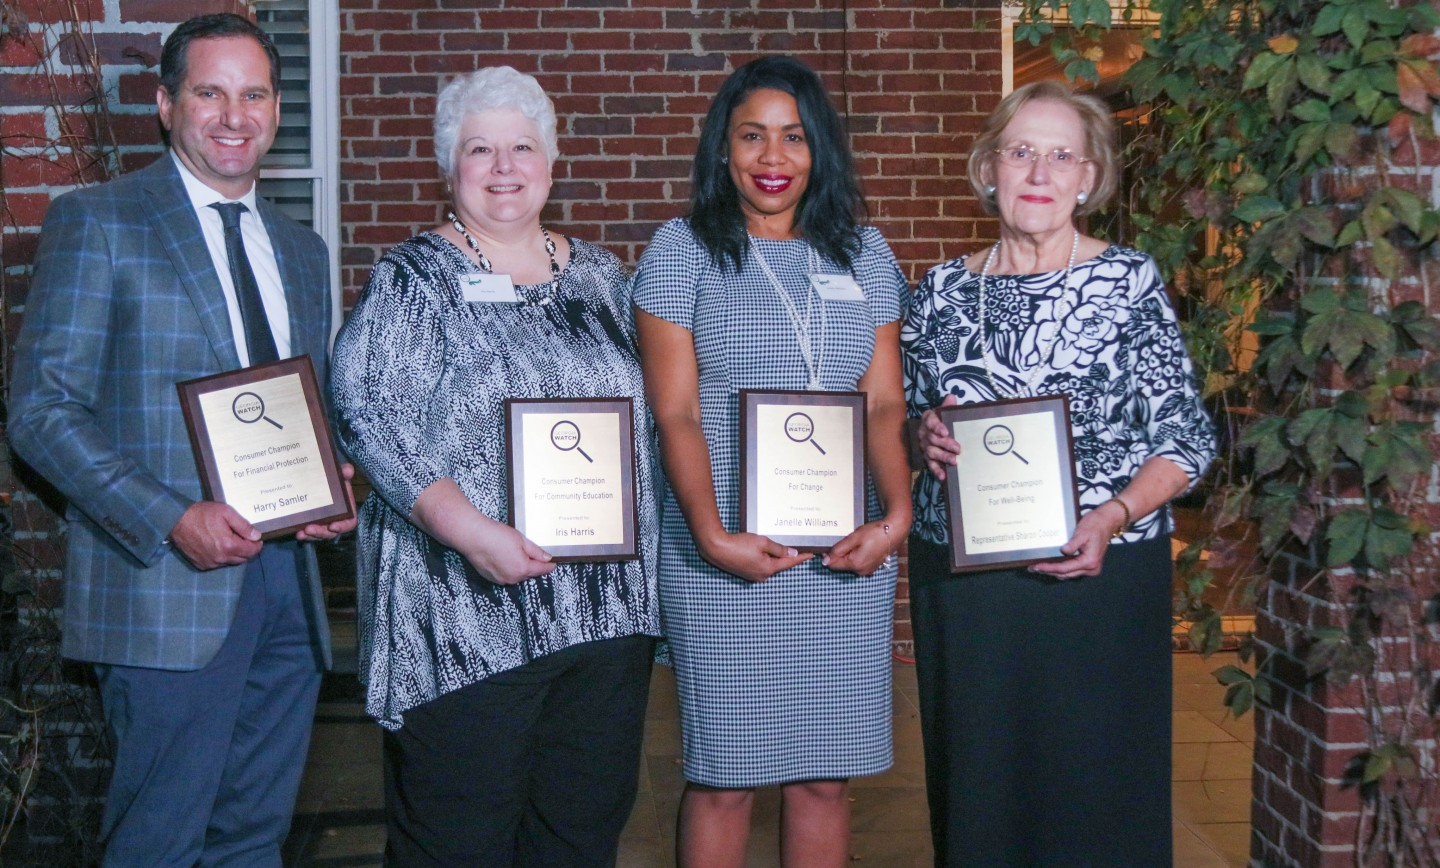 Fayette Senior Services' Iris Harris presented with Consumer Champion Award